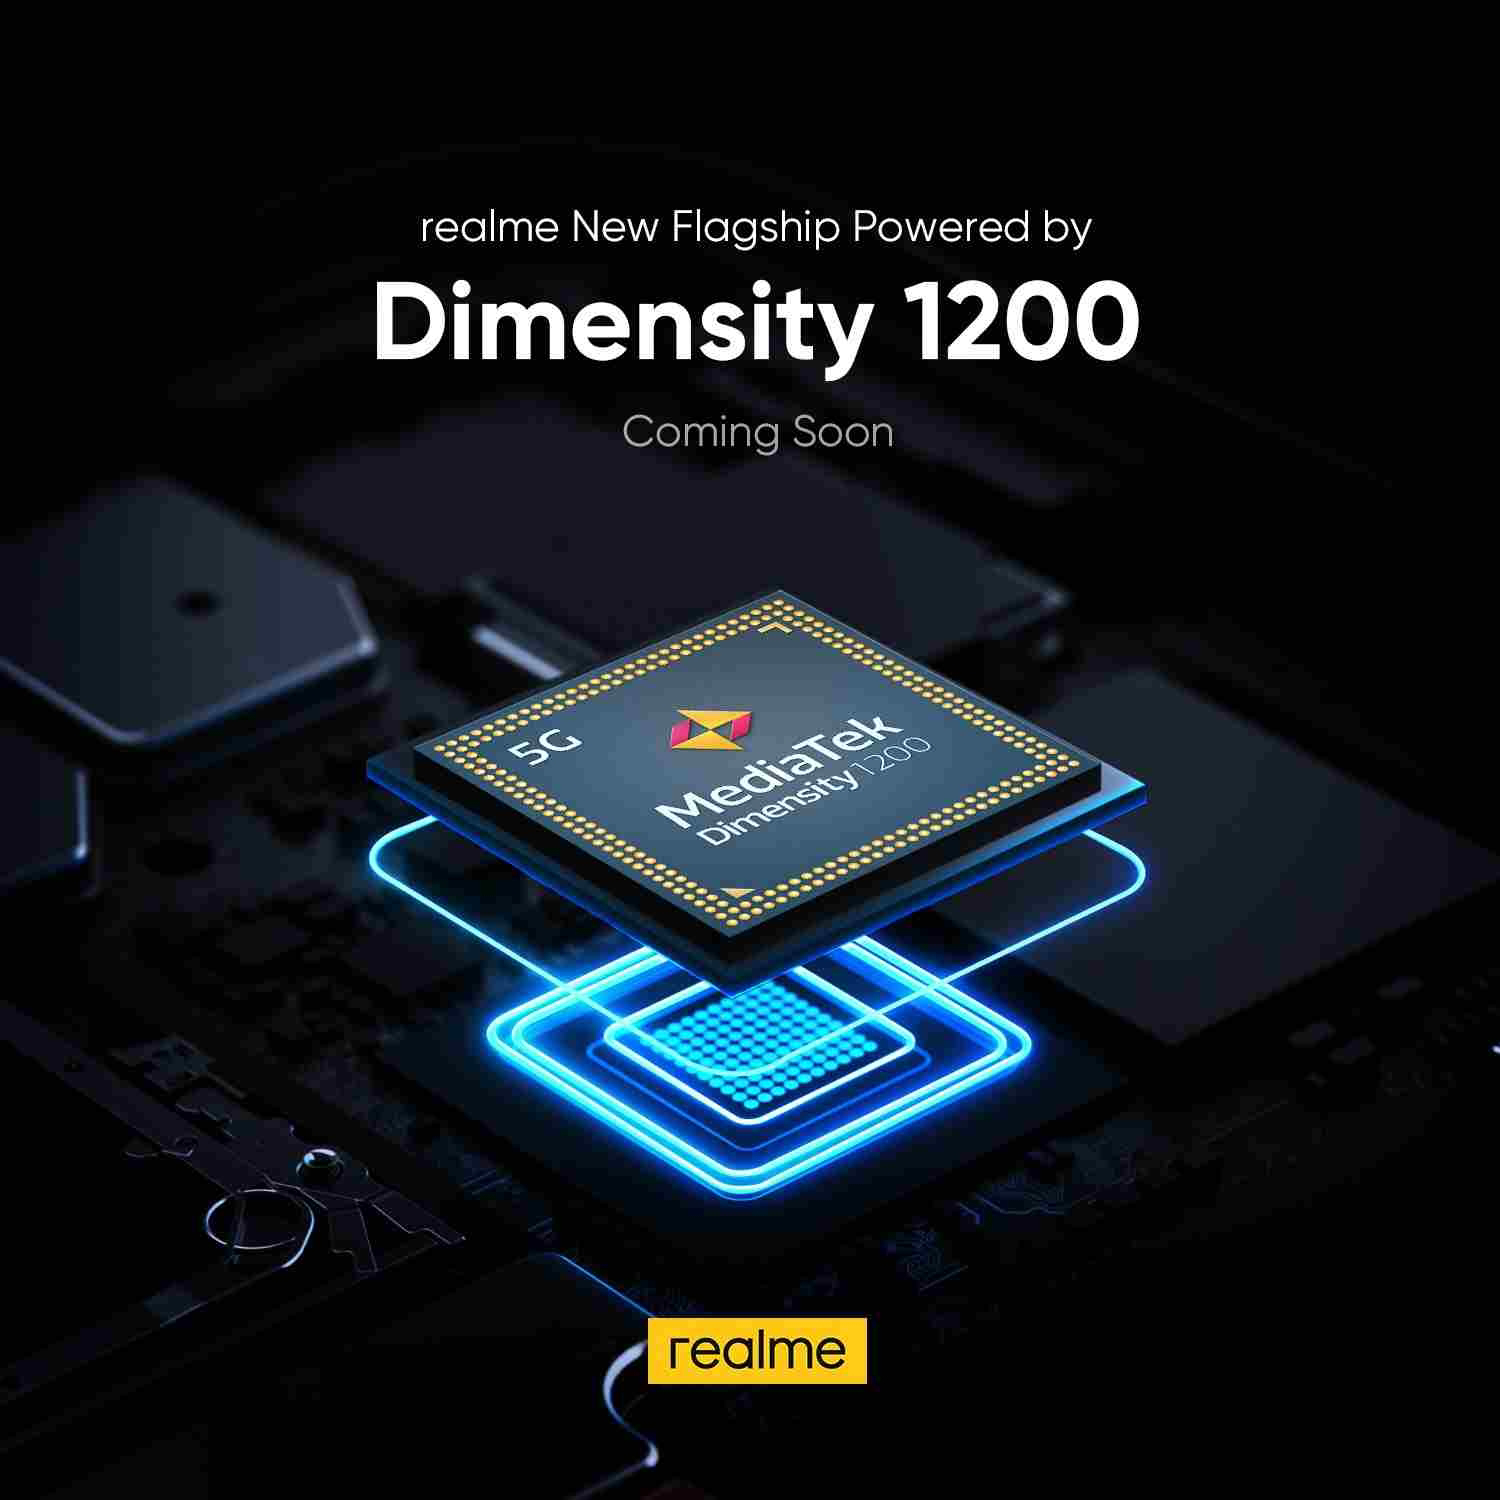 realme flagship to use MediaTek's Dimensity 1200